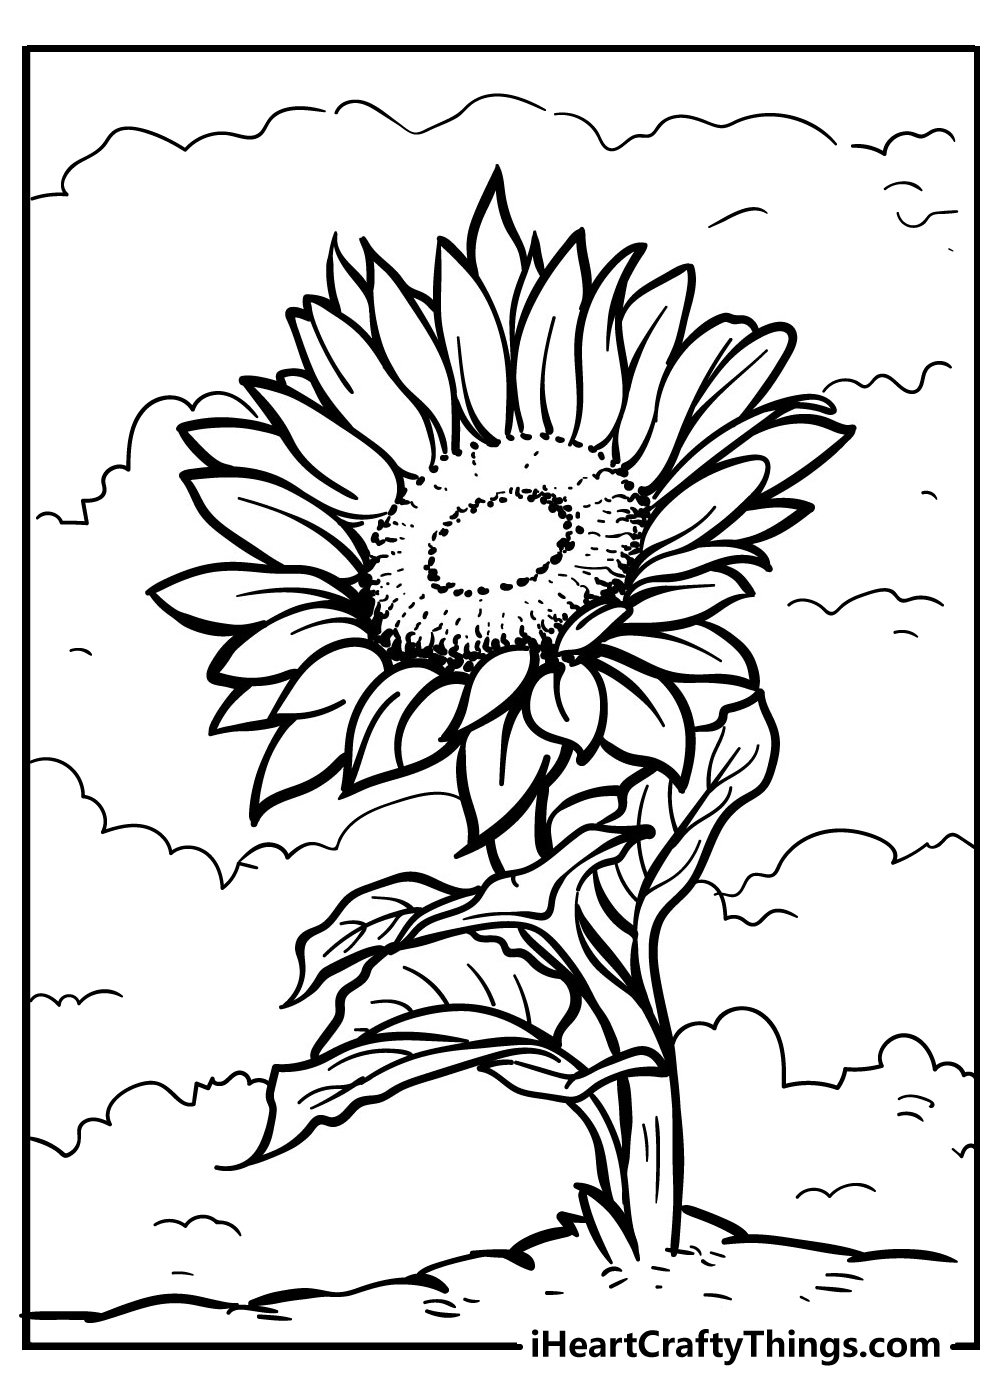 adult coloring new sunflower coloring pages free printable